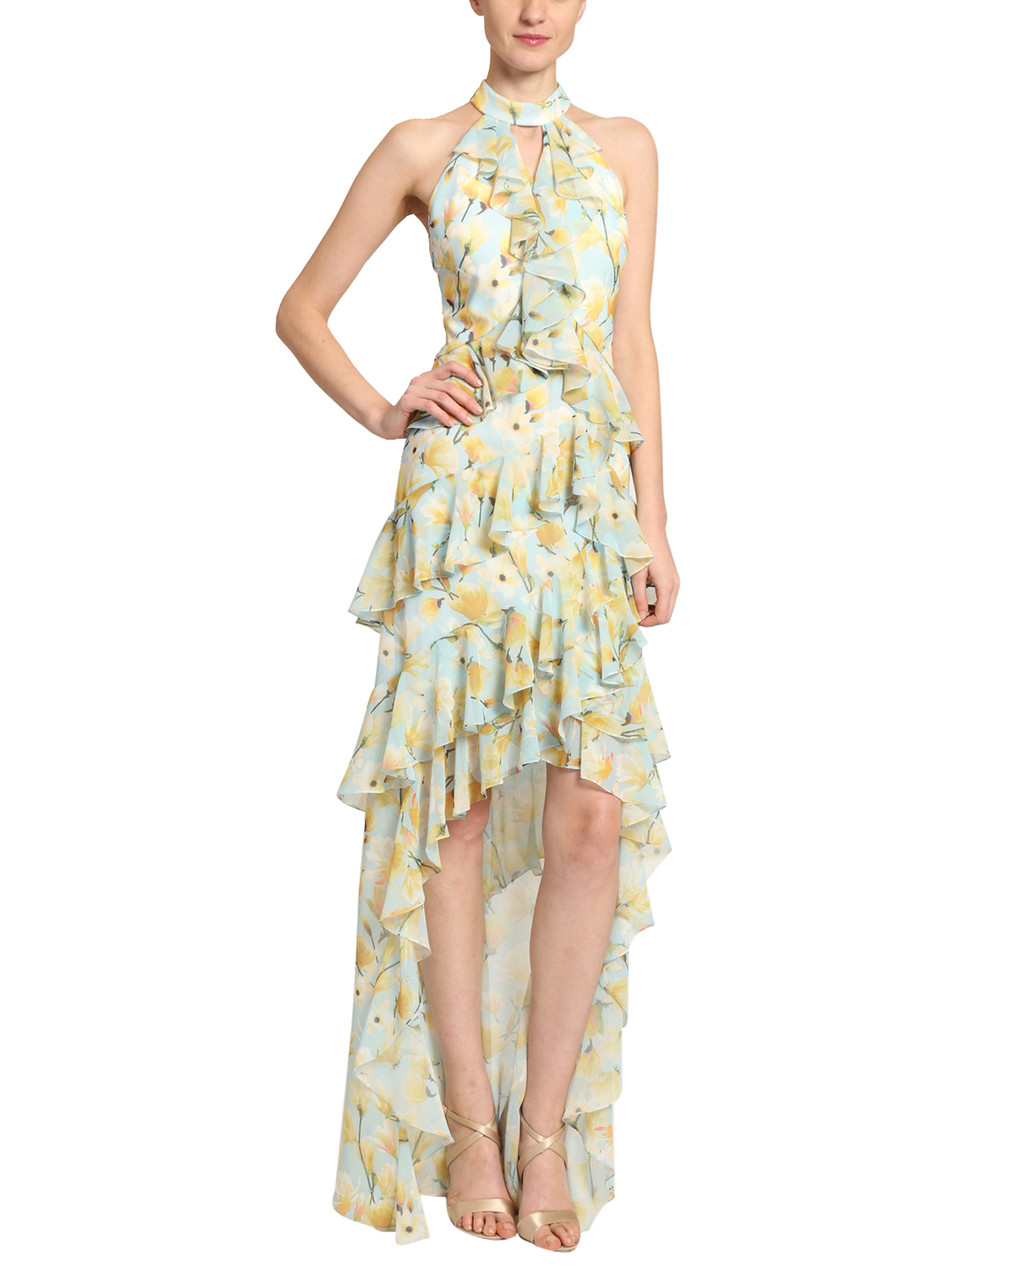 e767cee1 Floral Print Ruffle Georgette High Low by Badgley Mischka